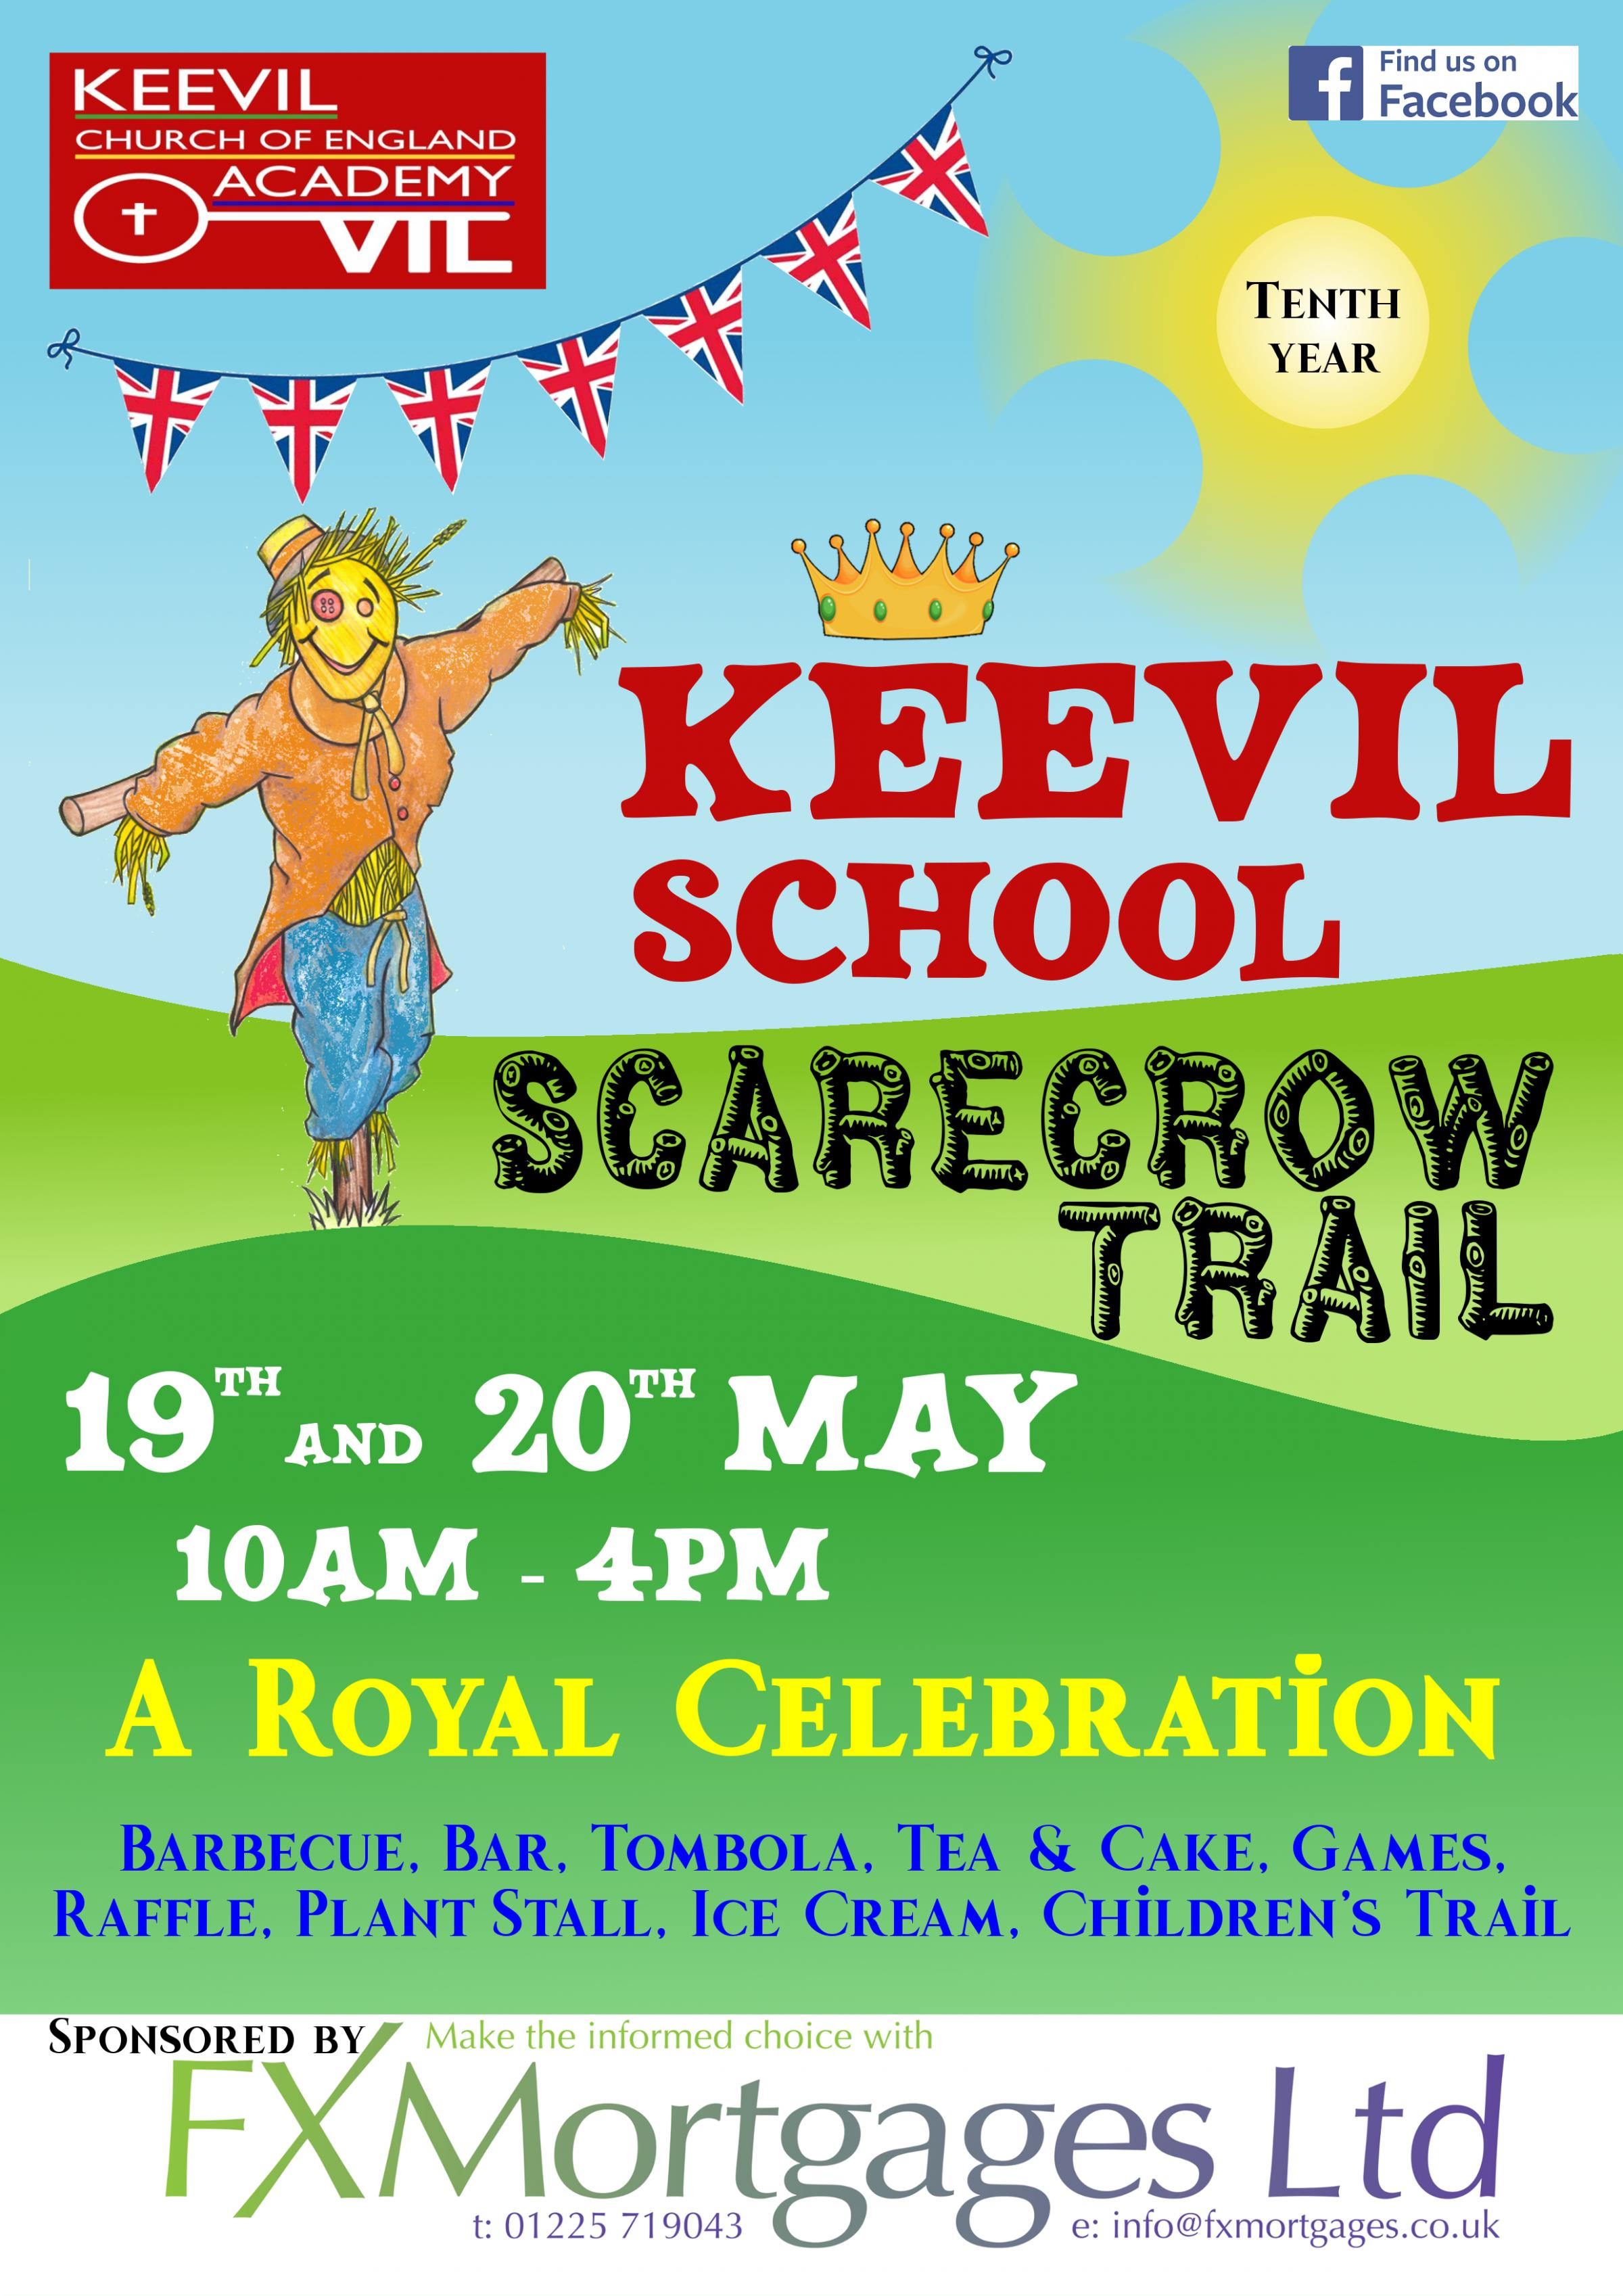 Keevil School Scarecrow Trail